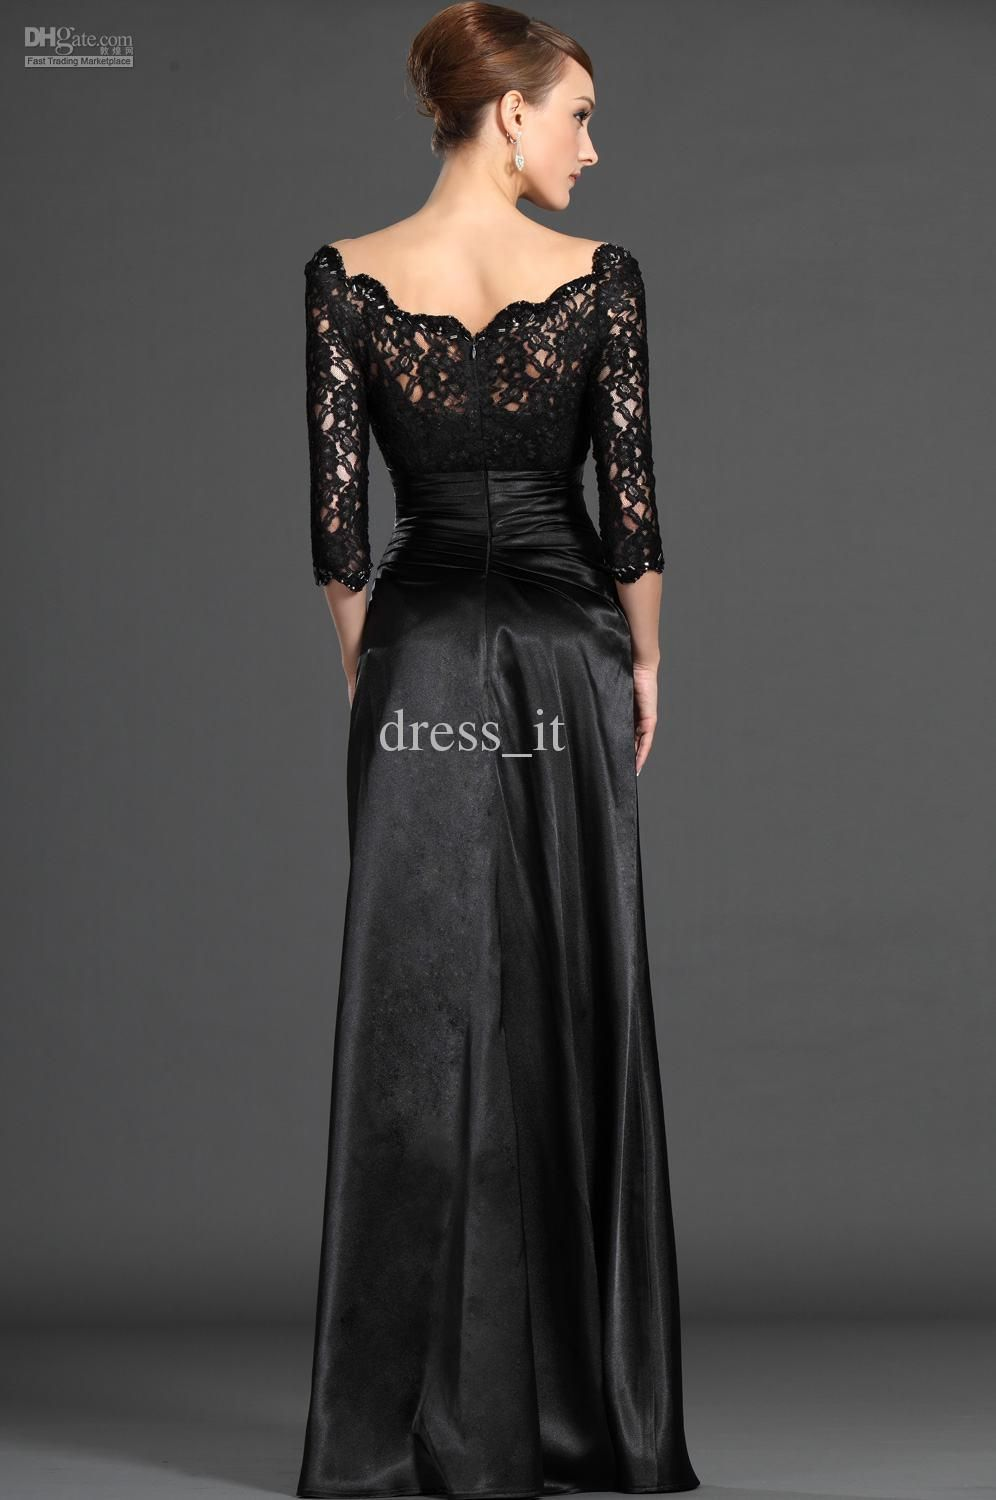 pinterest 2012 mother of the bride dresses